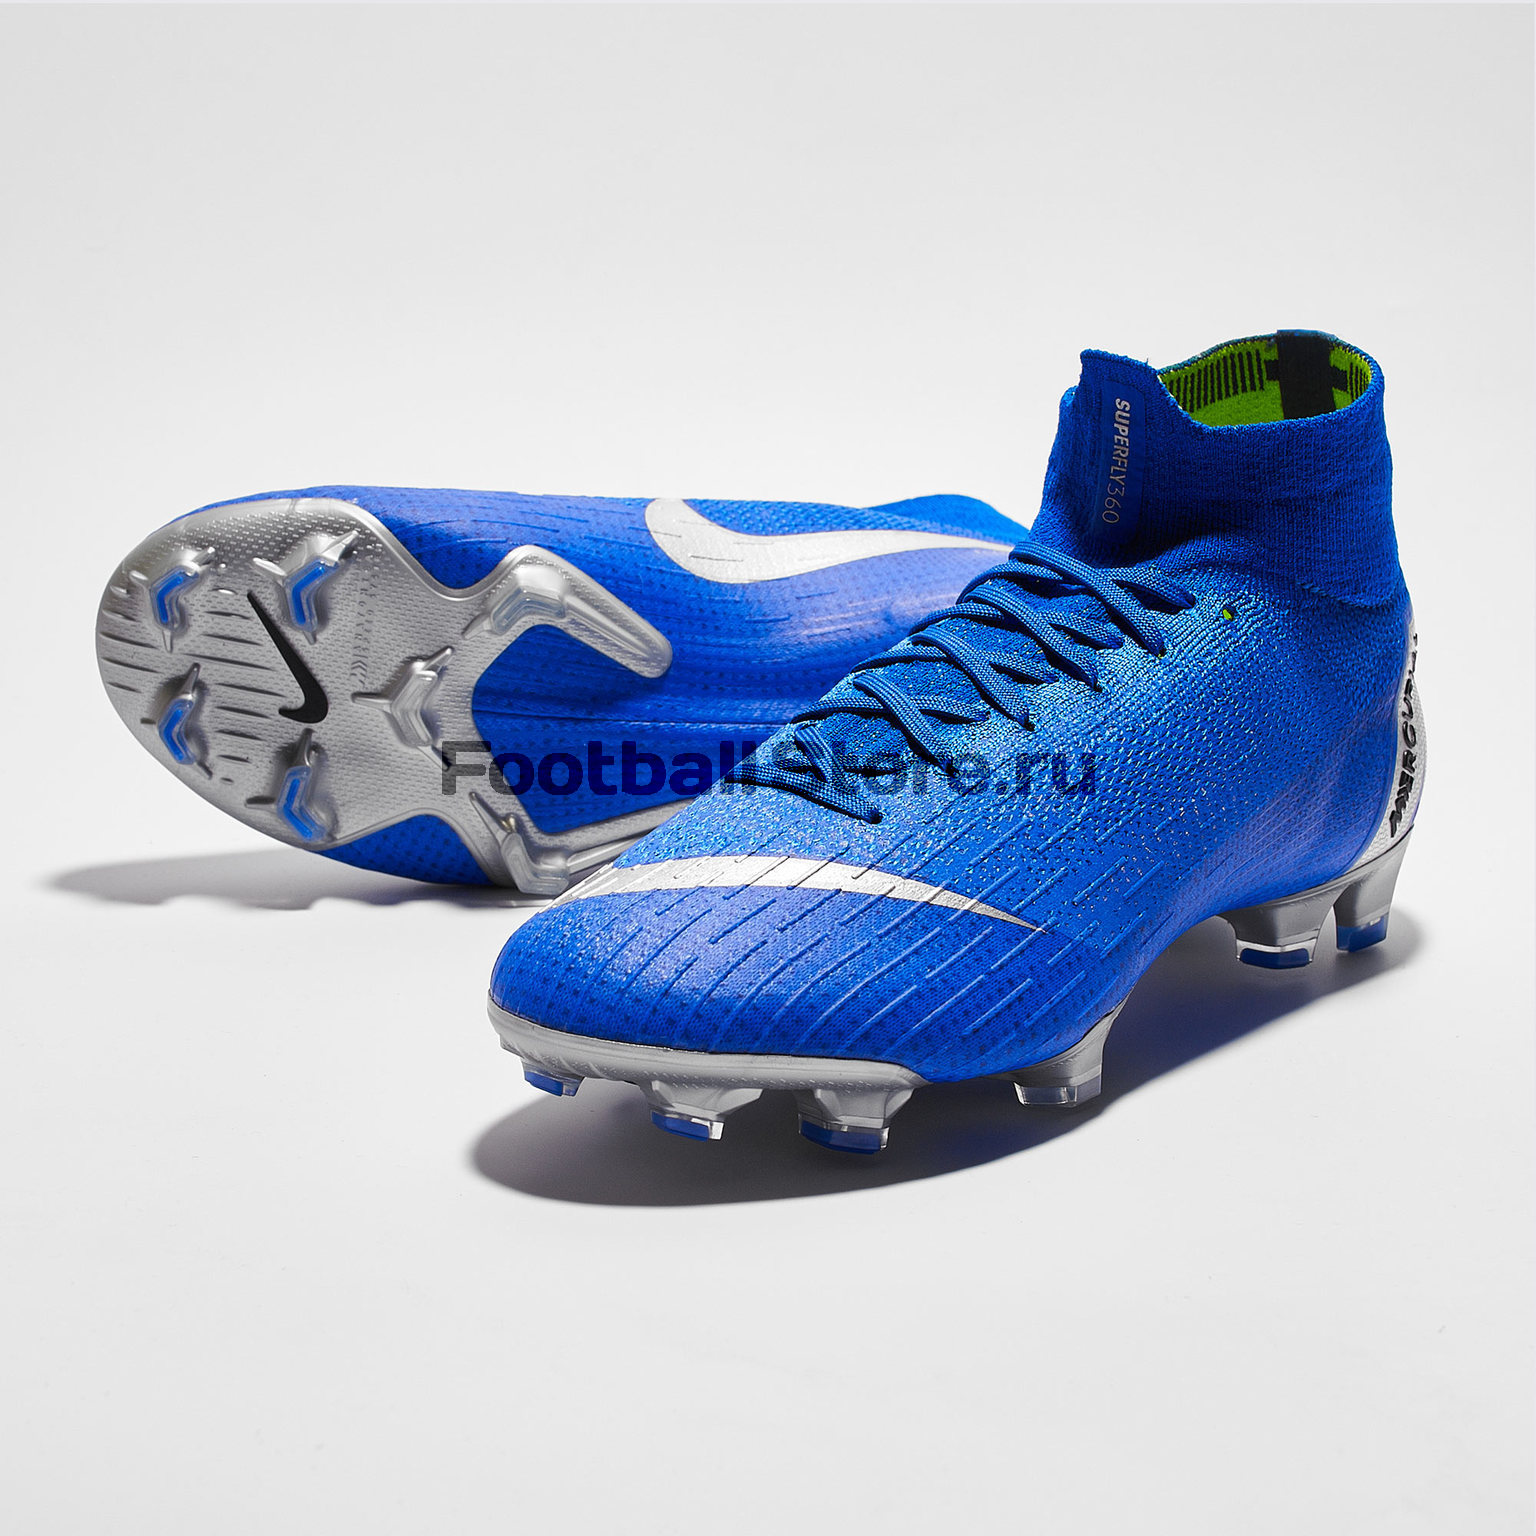 Бутсы Nike Superfly 6 Elite FG AH7365-400 бутсы nike superfly 6 elite cr7 fg aj3547 600